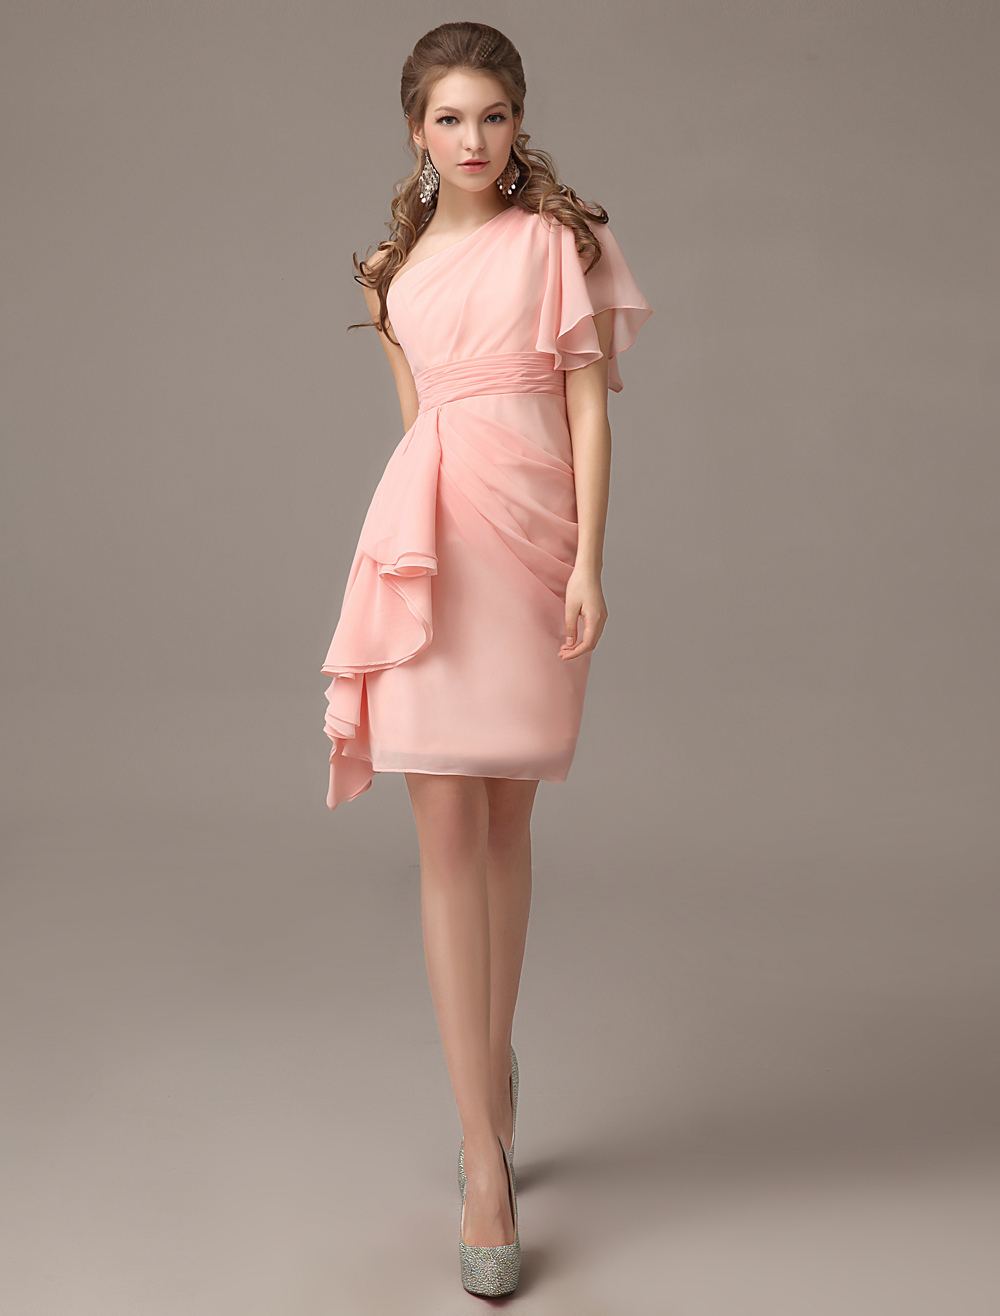 Sheath Pink One-Shoulder Knee-Length Chiffon Bridesmaid Dress with Grace Side Draping